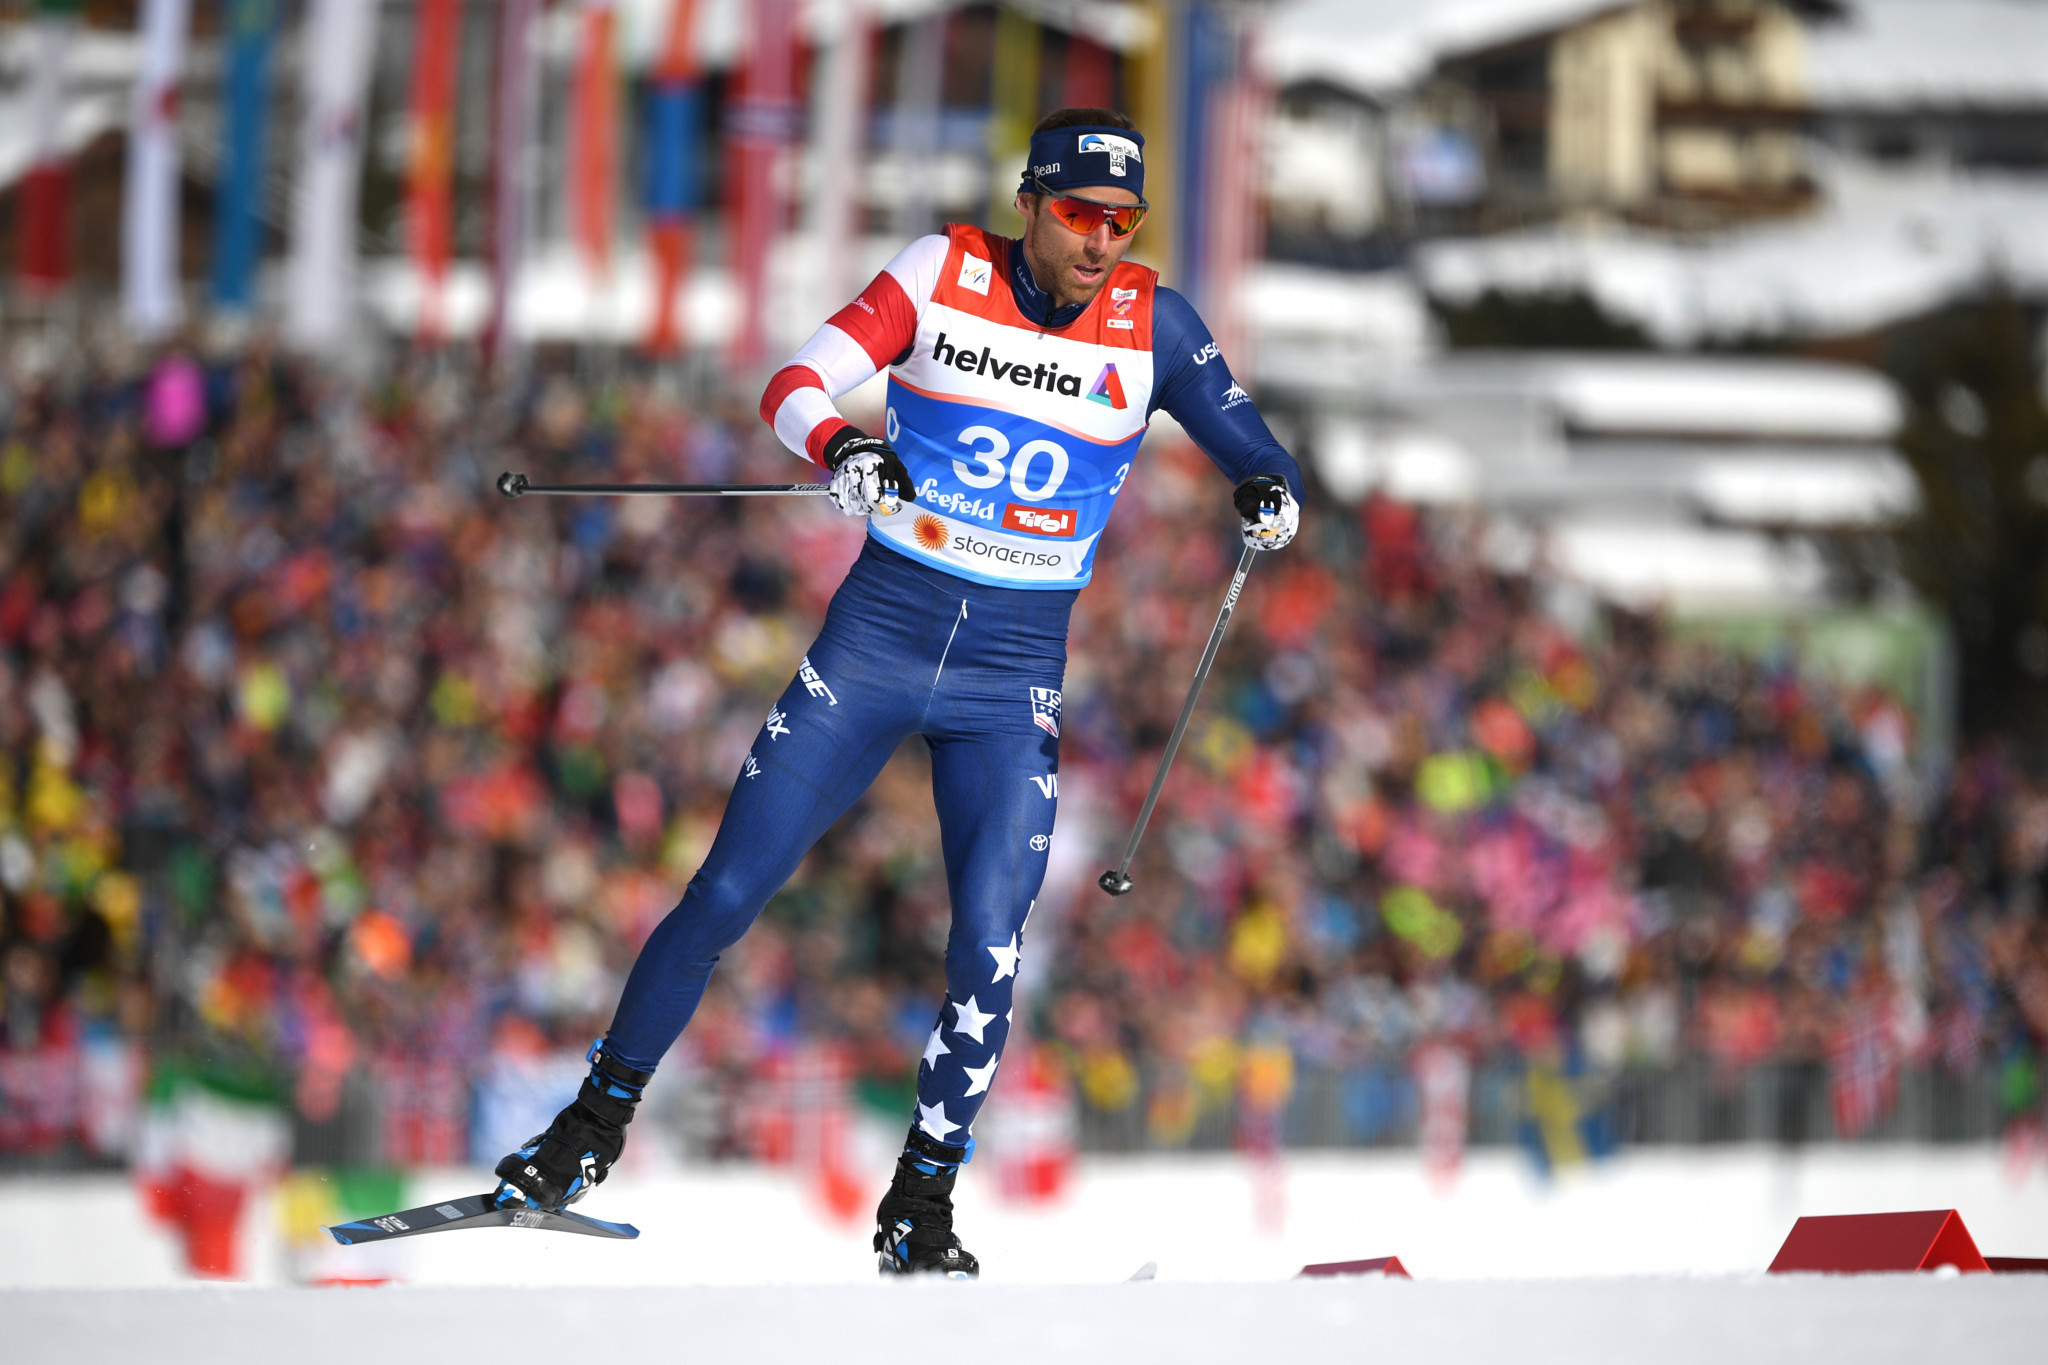 Russian cross-country coach Kramer unable to join team due to visa issues